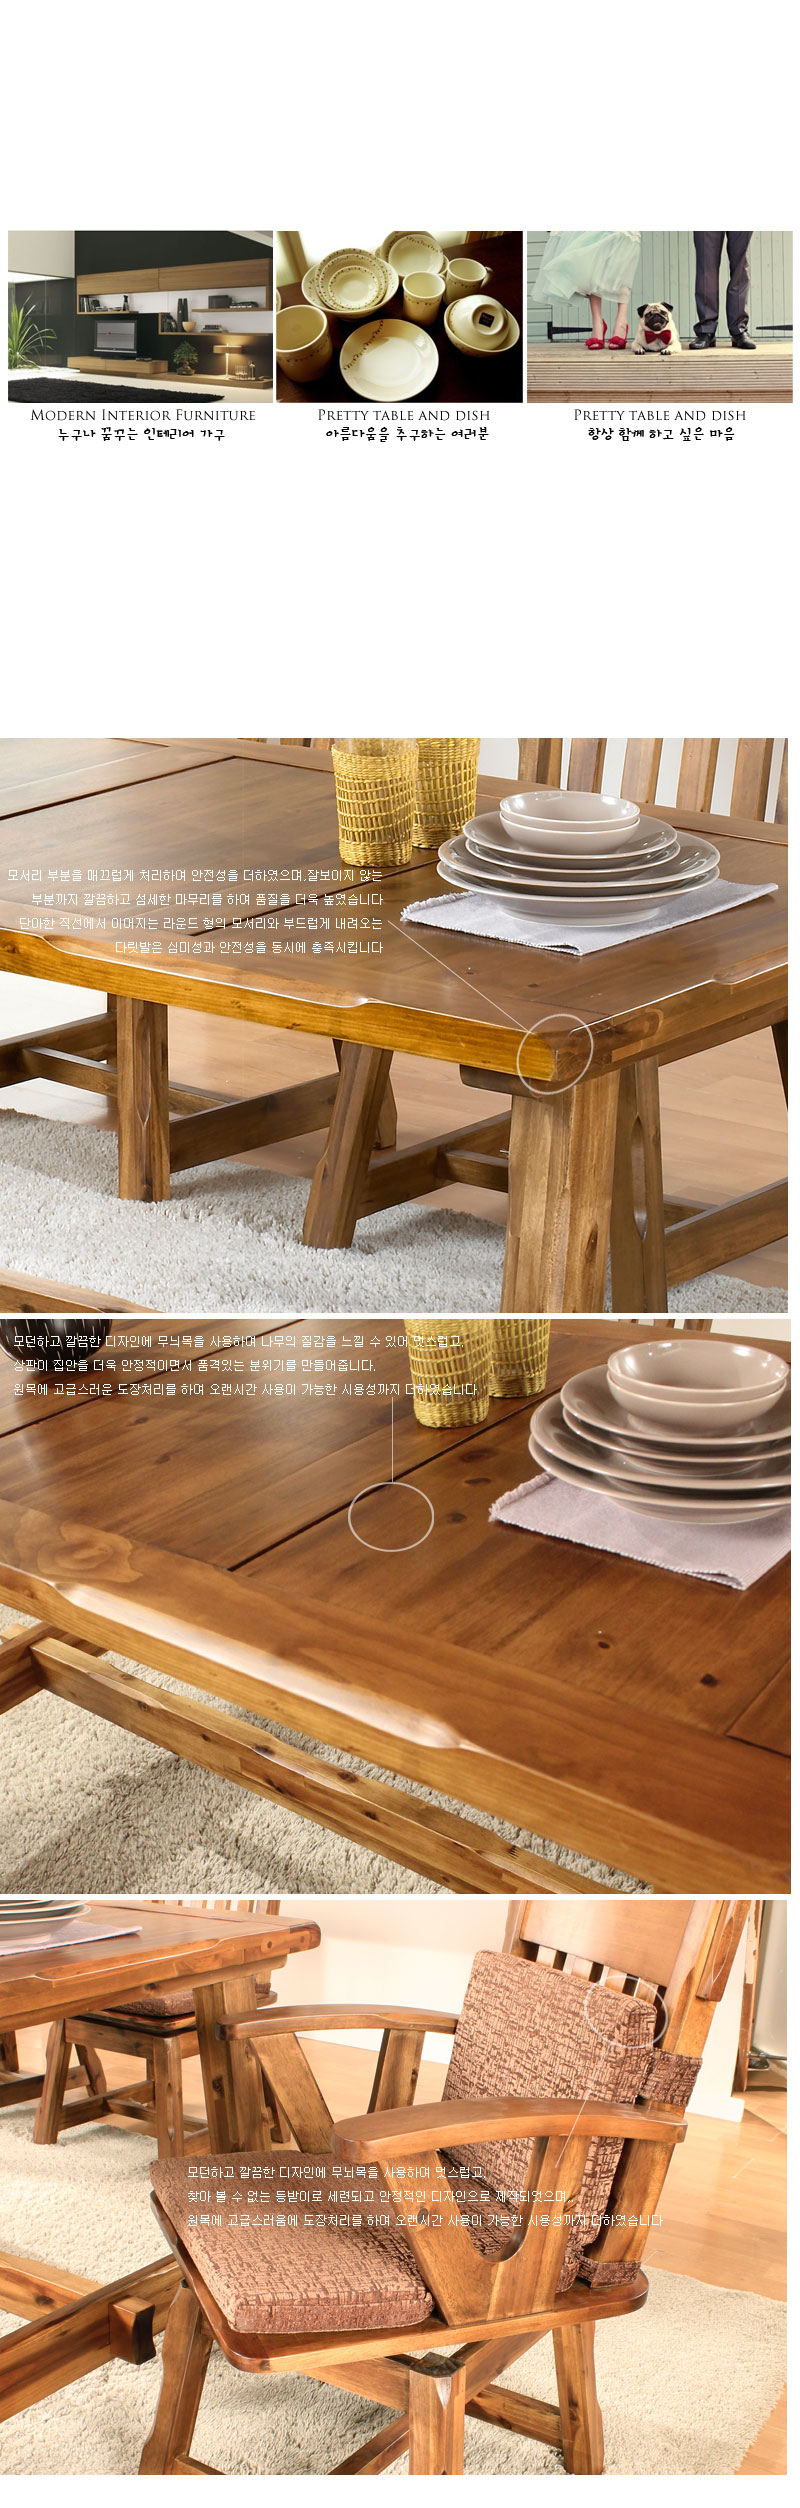 Two For One Table By Elda Bellone · Http://inliv.kr/2013/4table/wood/elda/